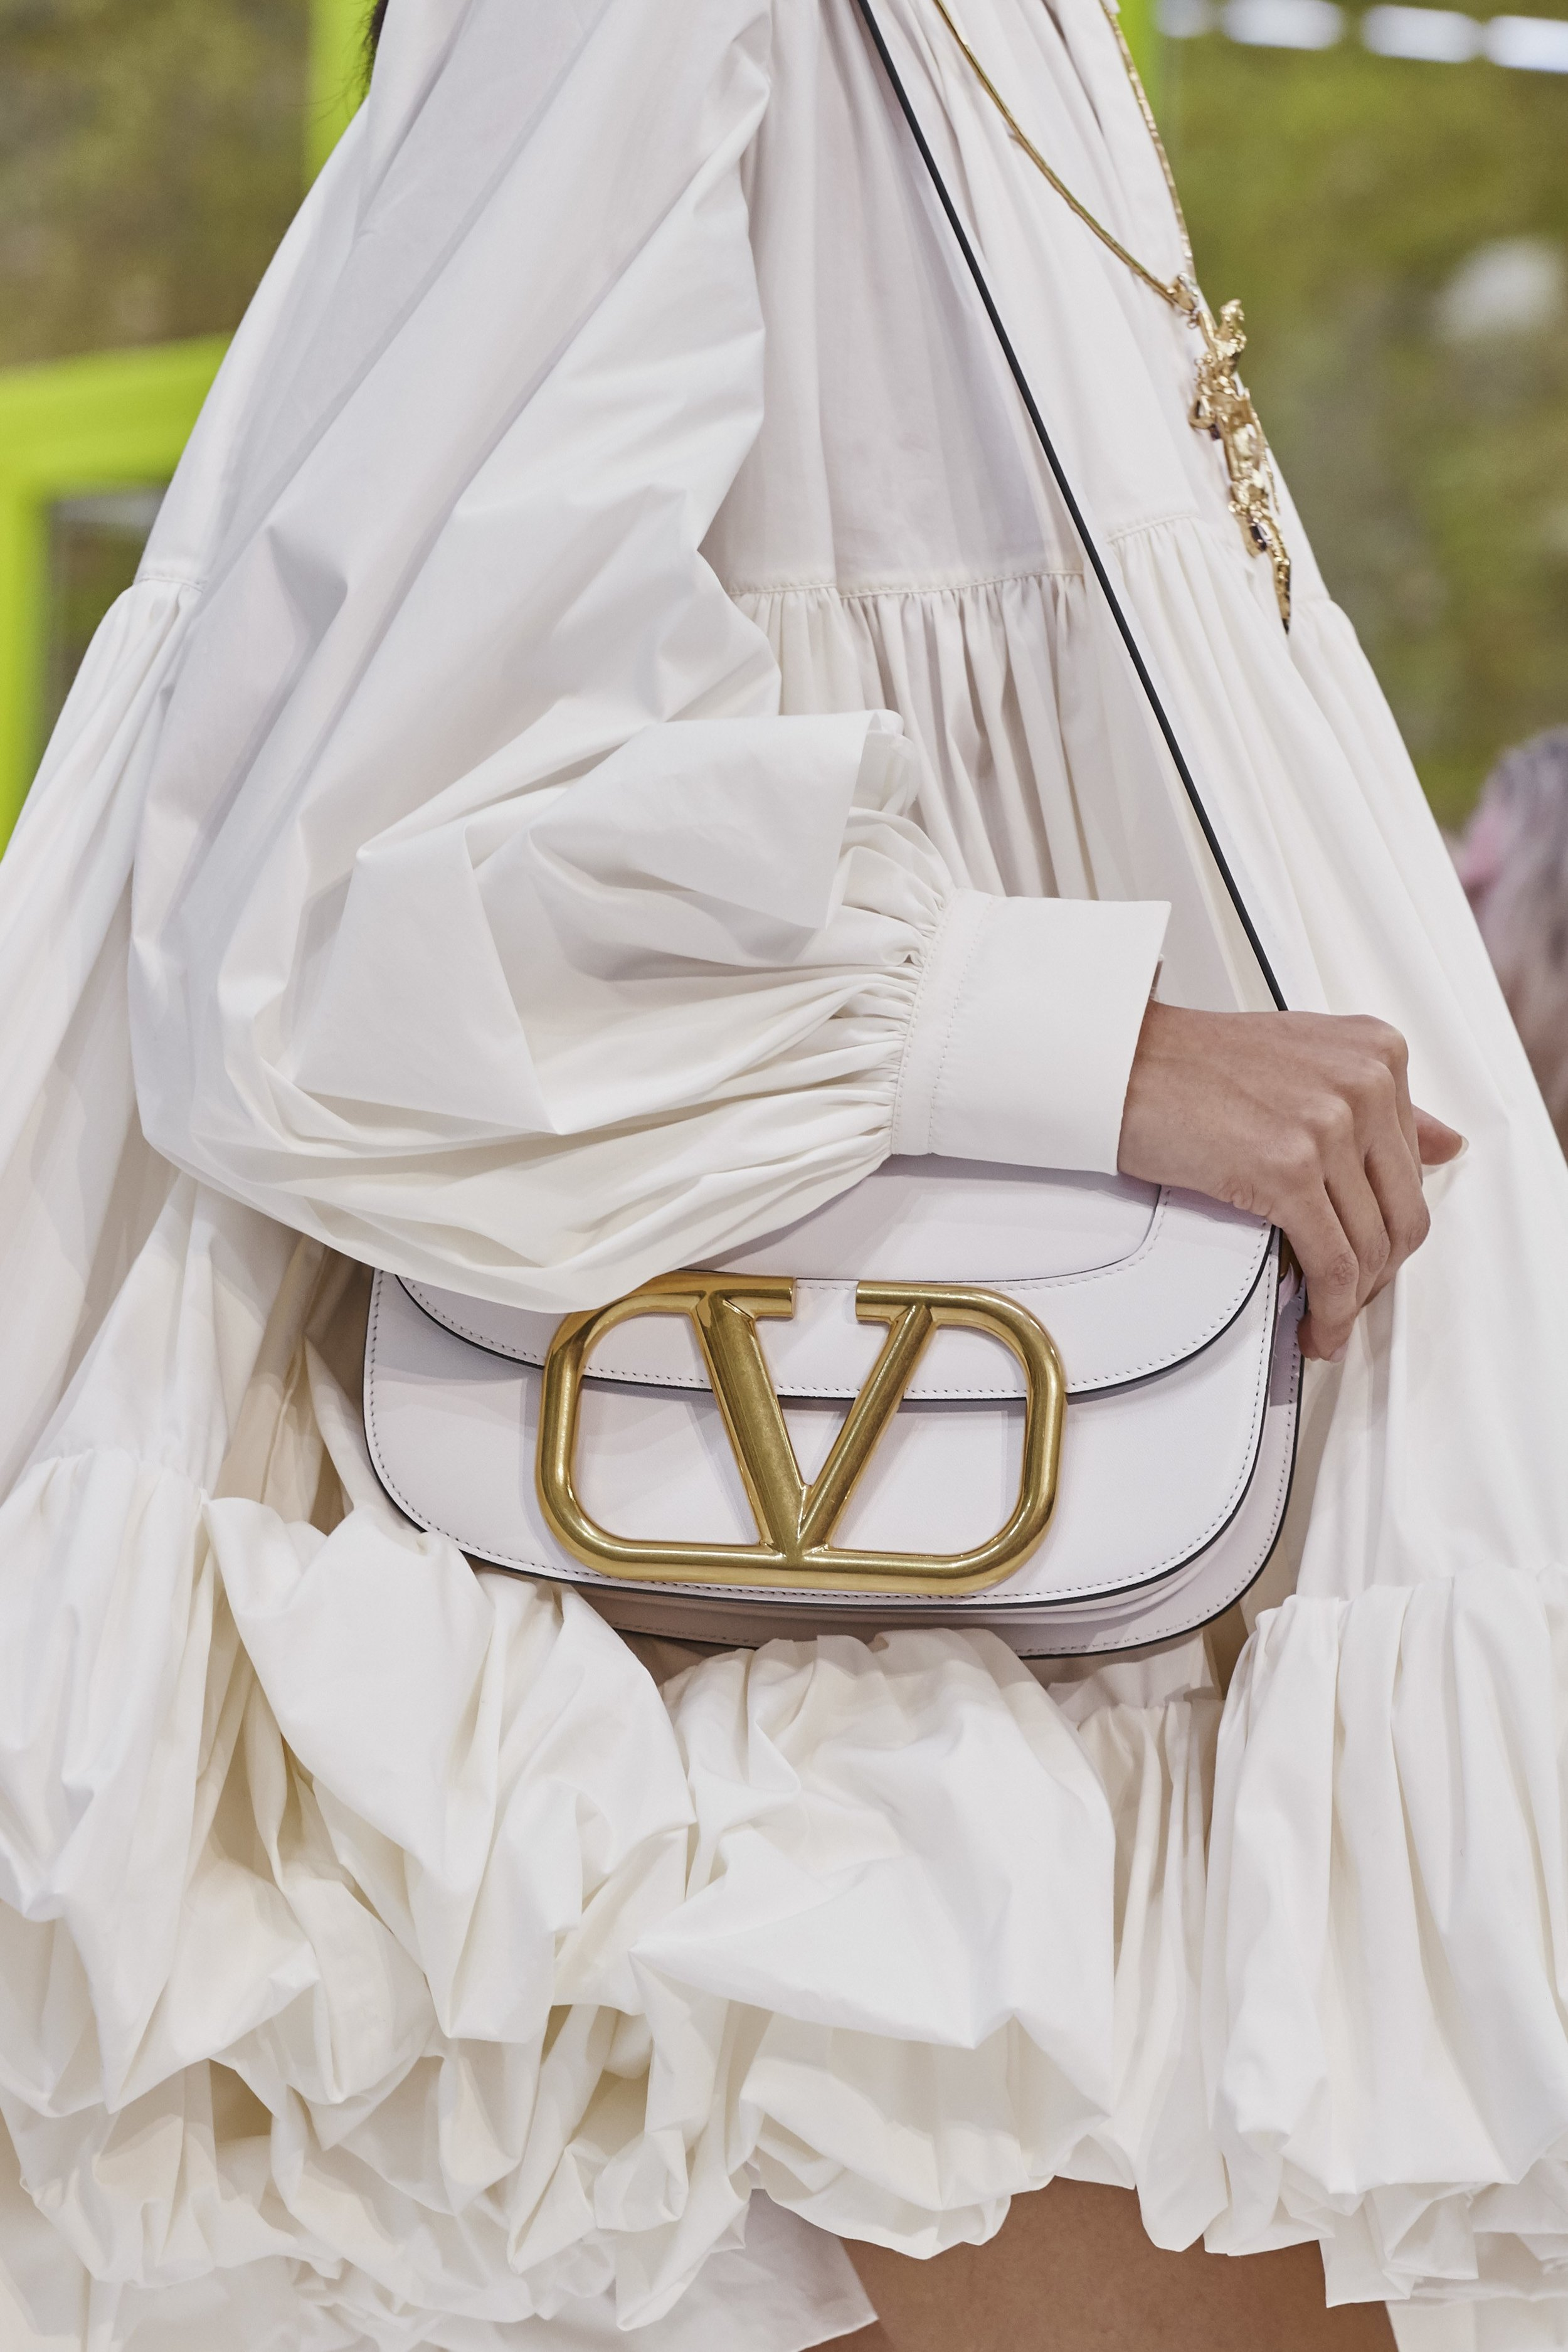 Details at Valentino SS20 by Pierpaolo Piccioli. Photo: theimpression.com